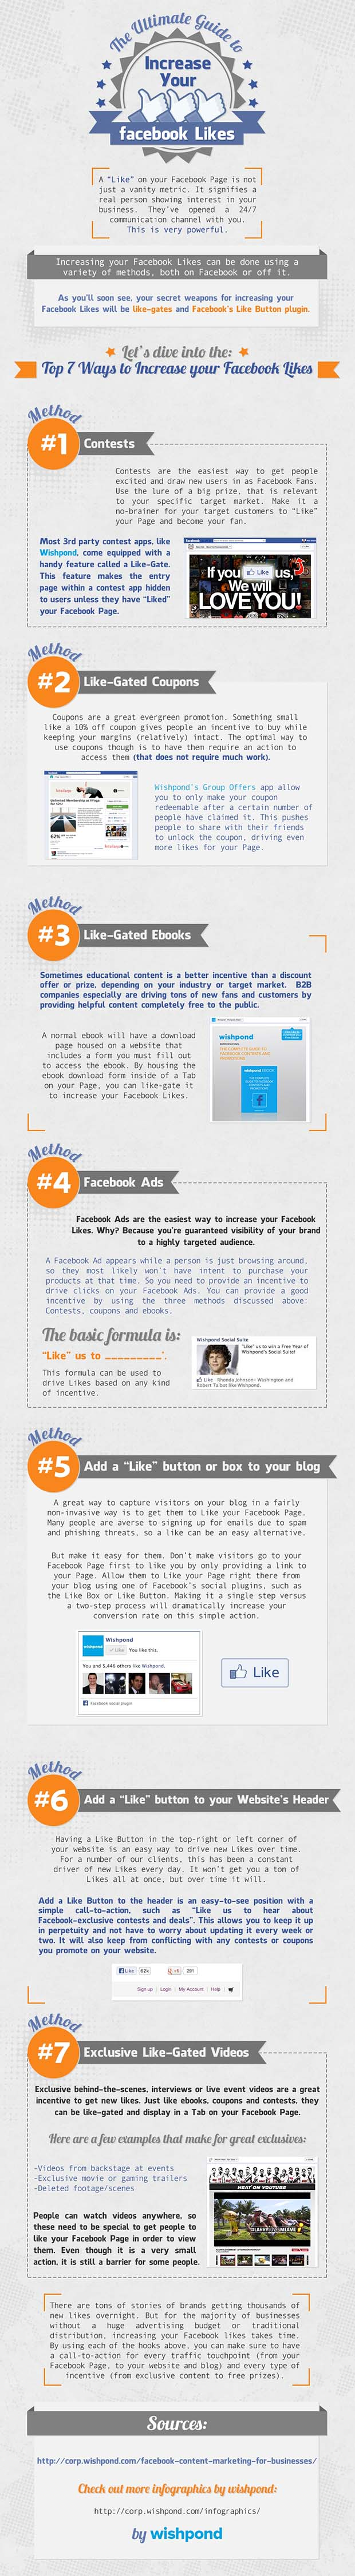 How to Get More Facebook Likes [infographic]